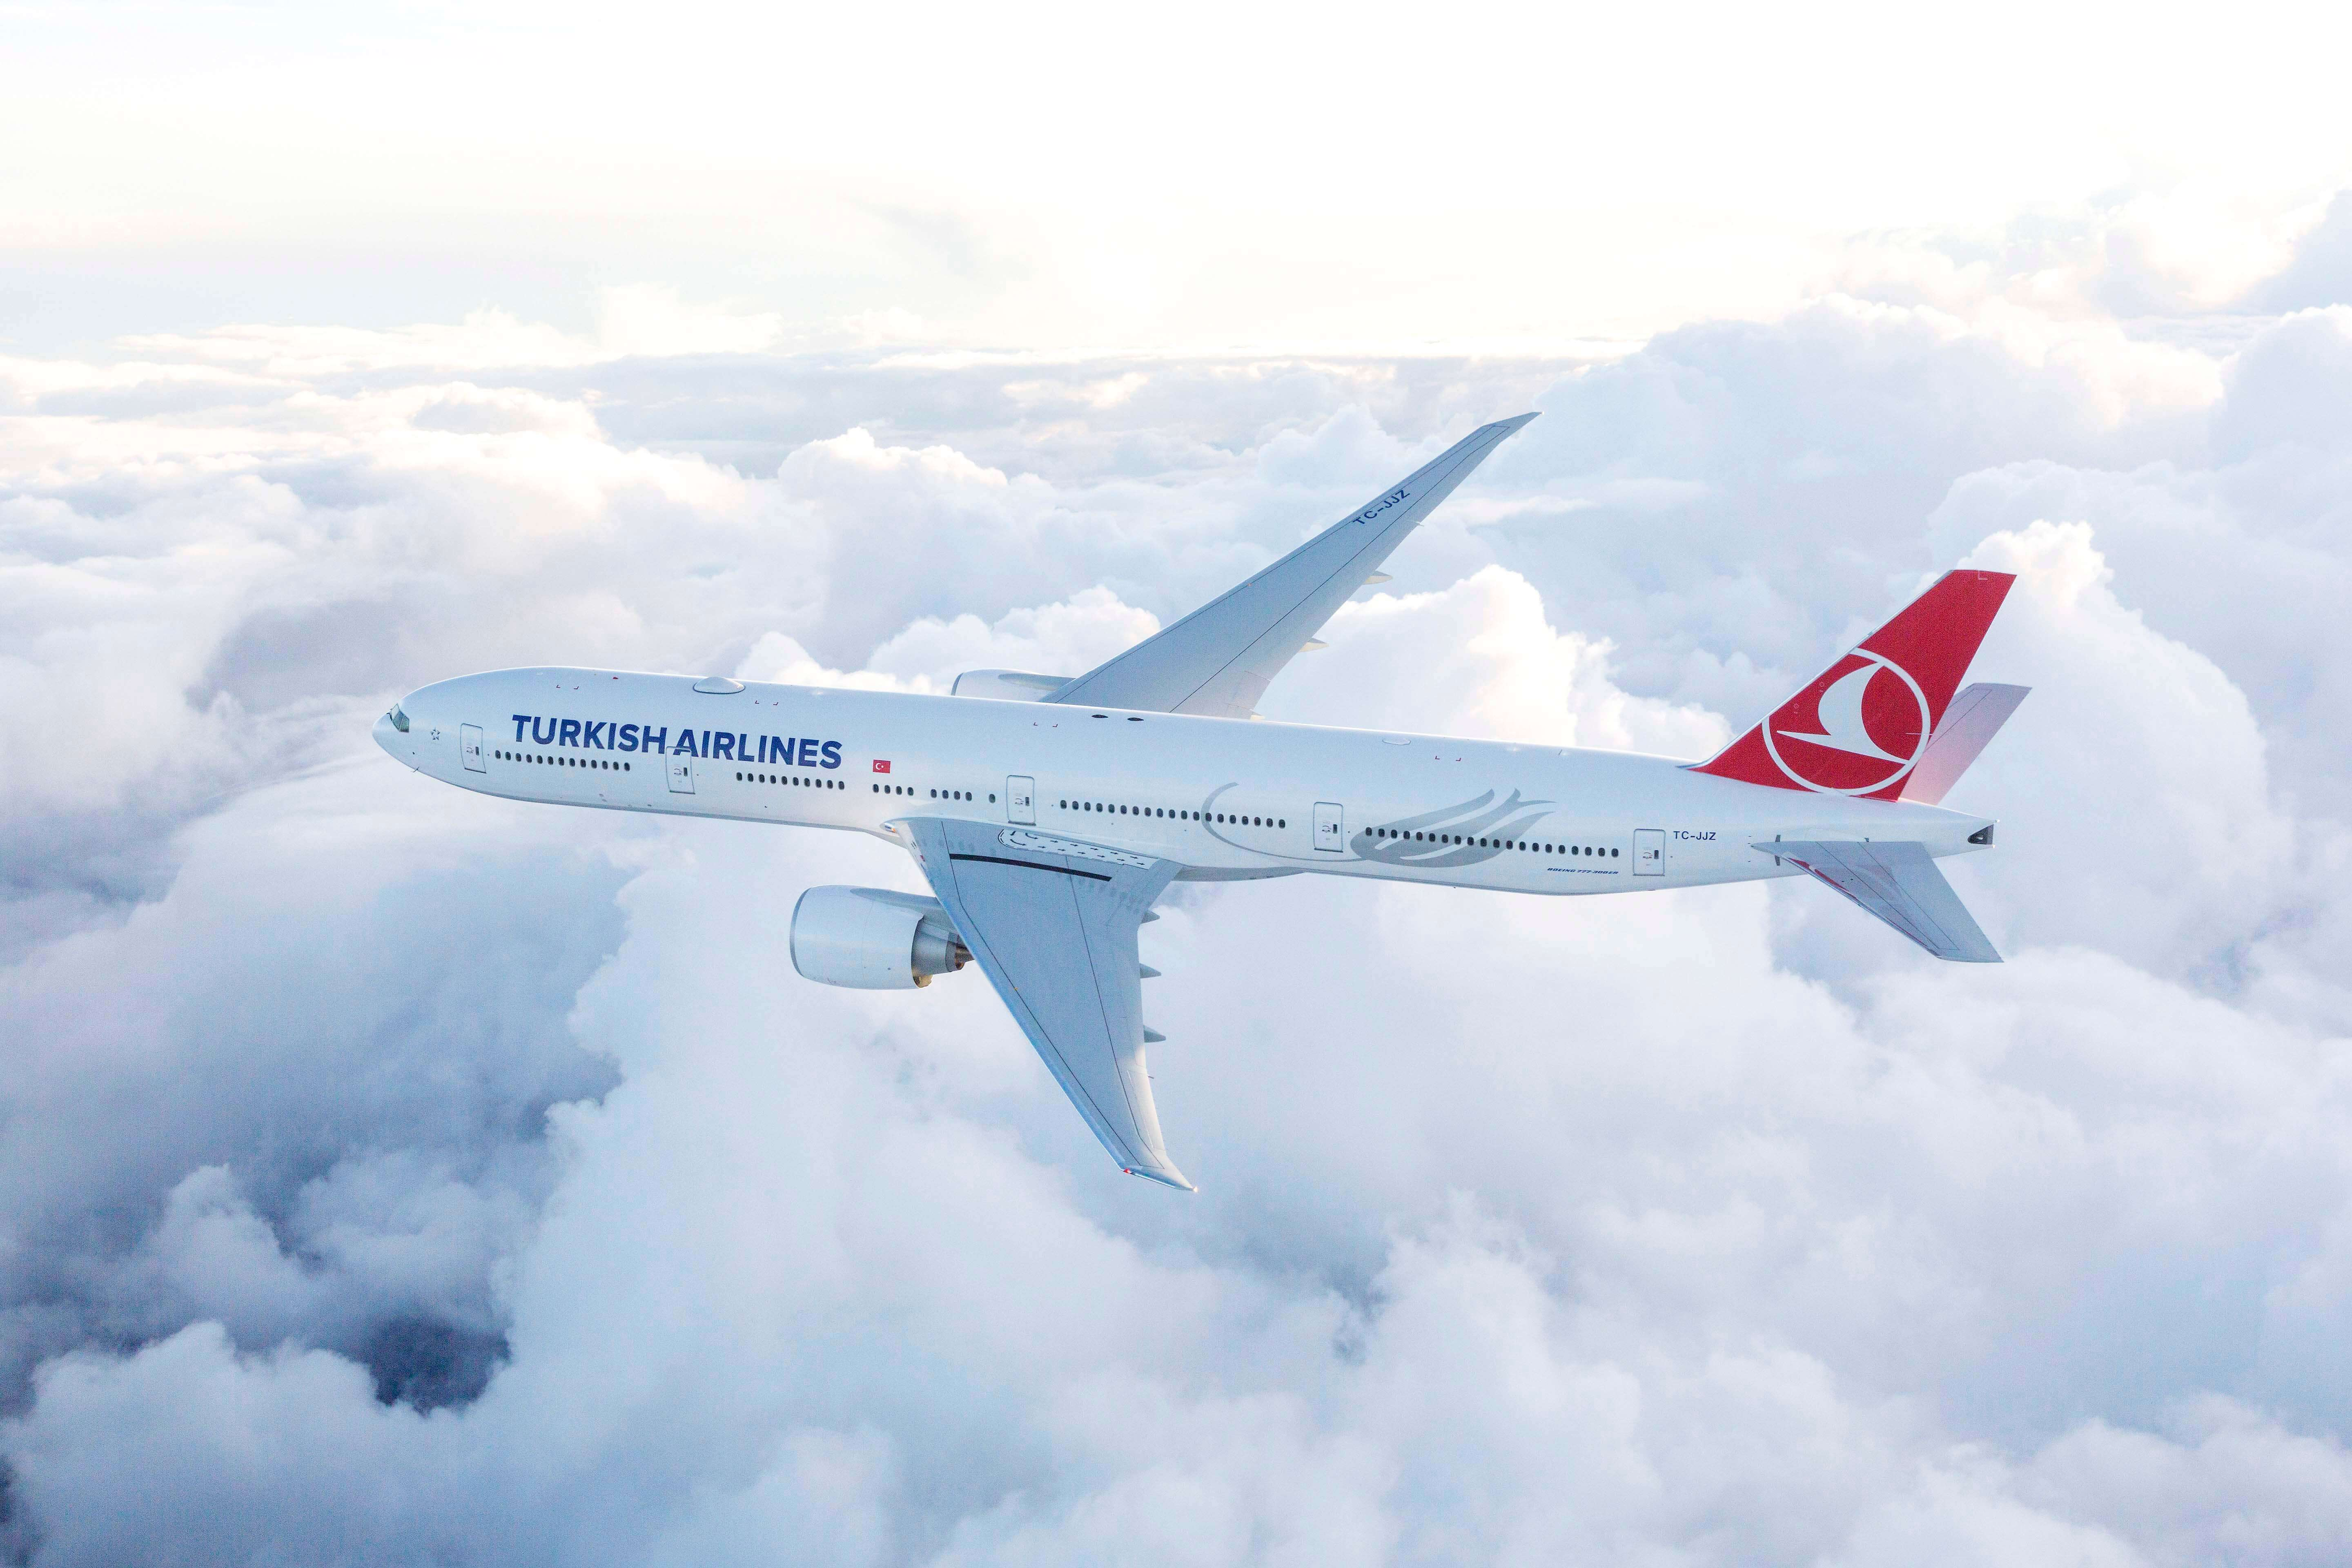 Turkish Airlines' new route to New Jersey